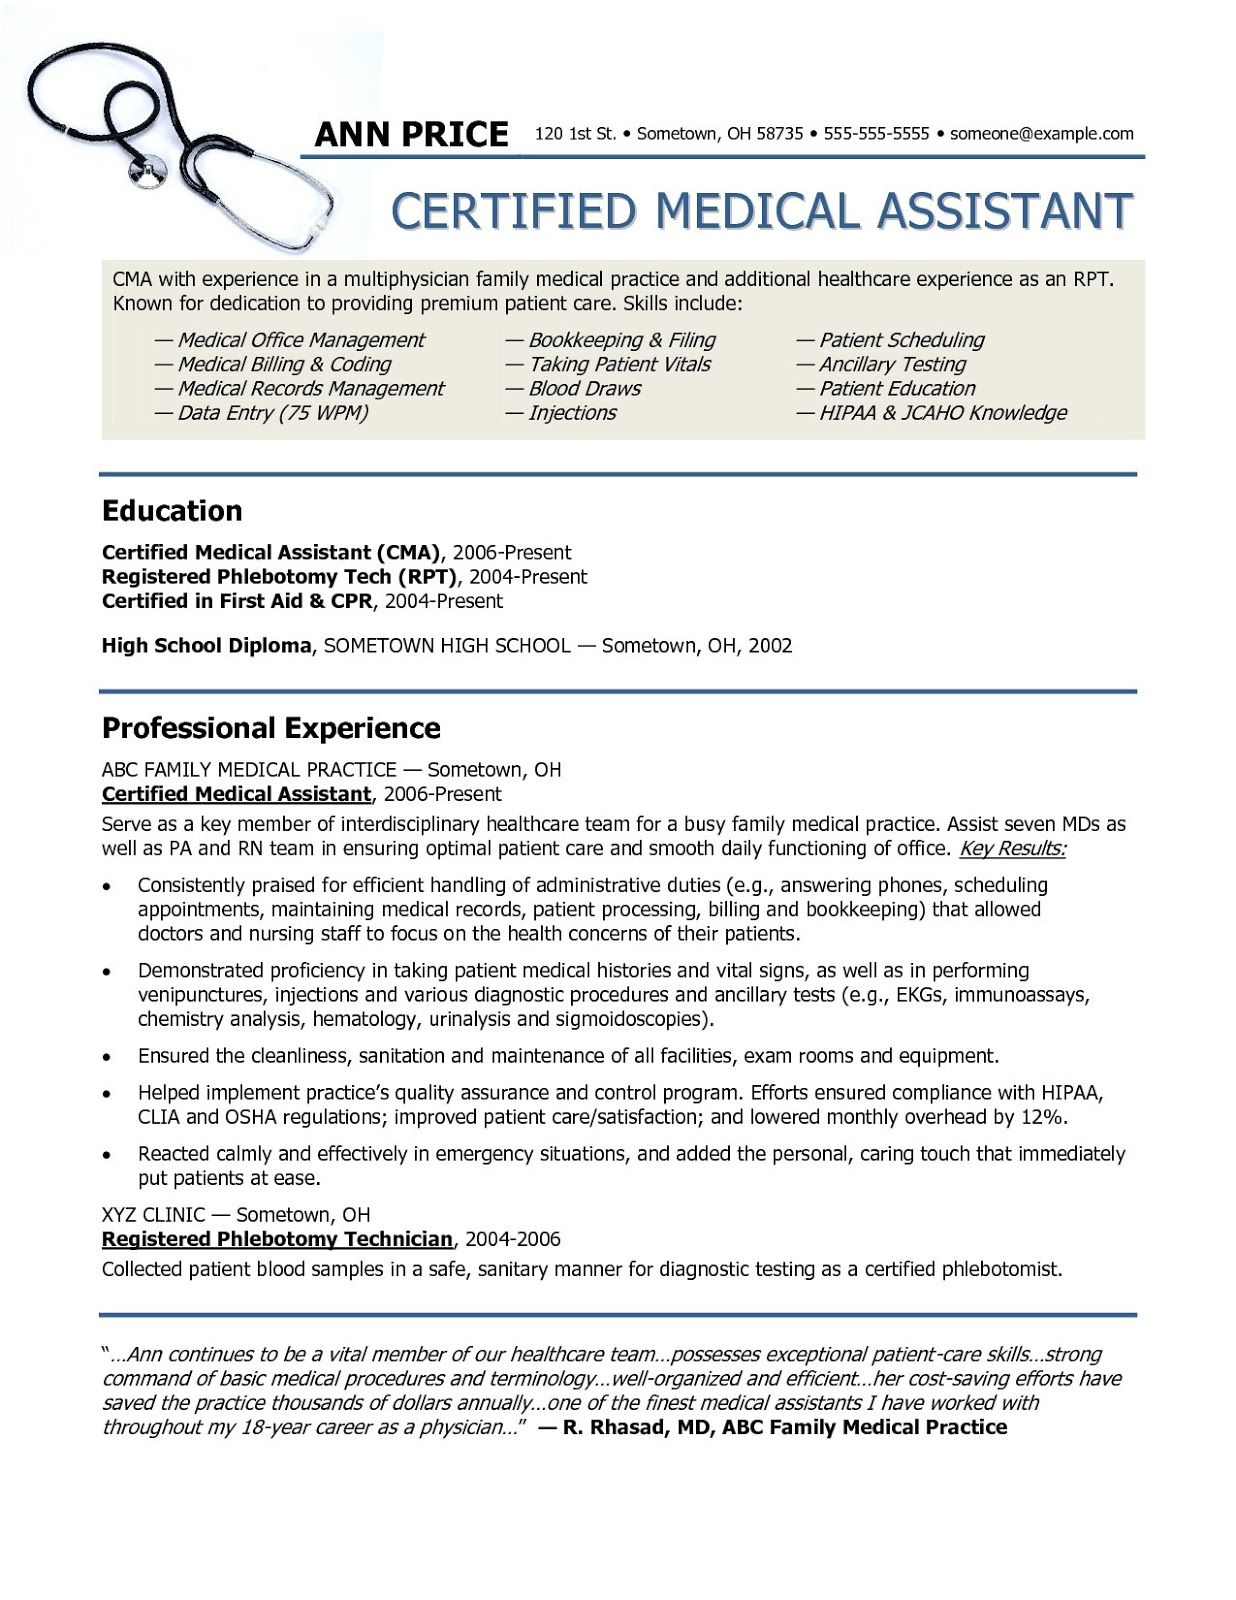 Medical Assistant Resume Examples 2019 Medical Assistant Resume Examples Medical Assistan Medical Assistant Resume Medical Assistant Skills Medical Assistant